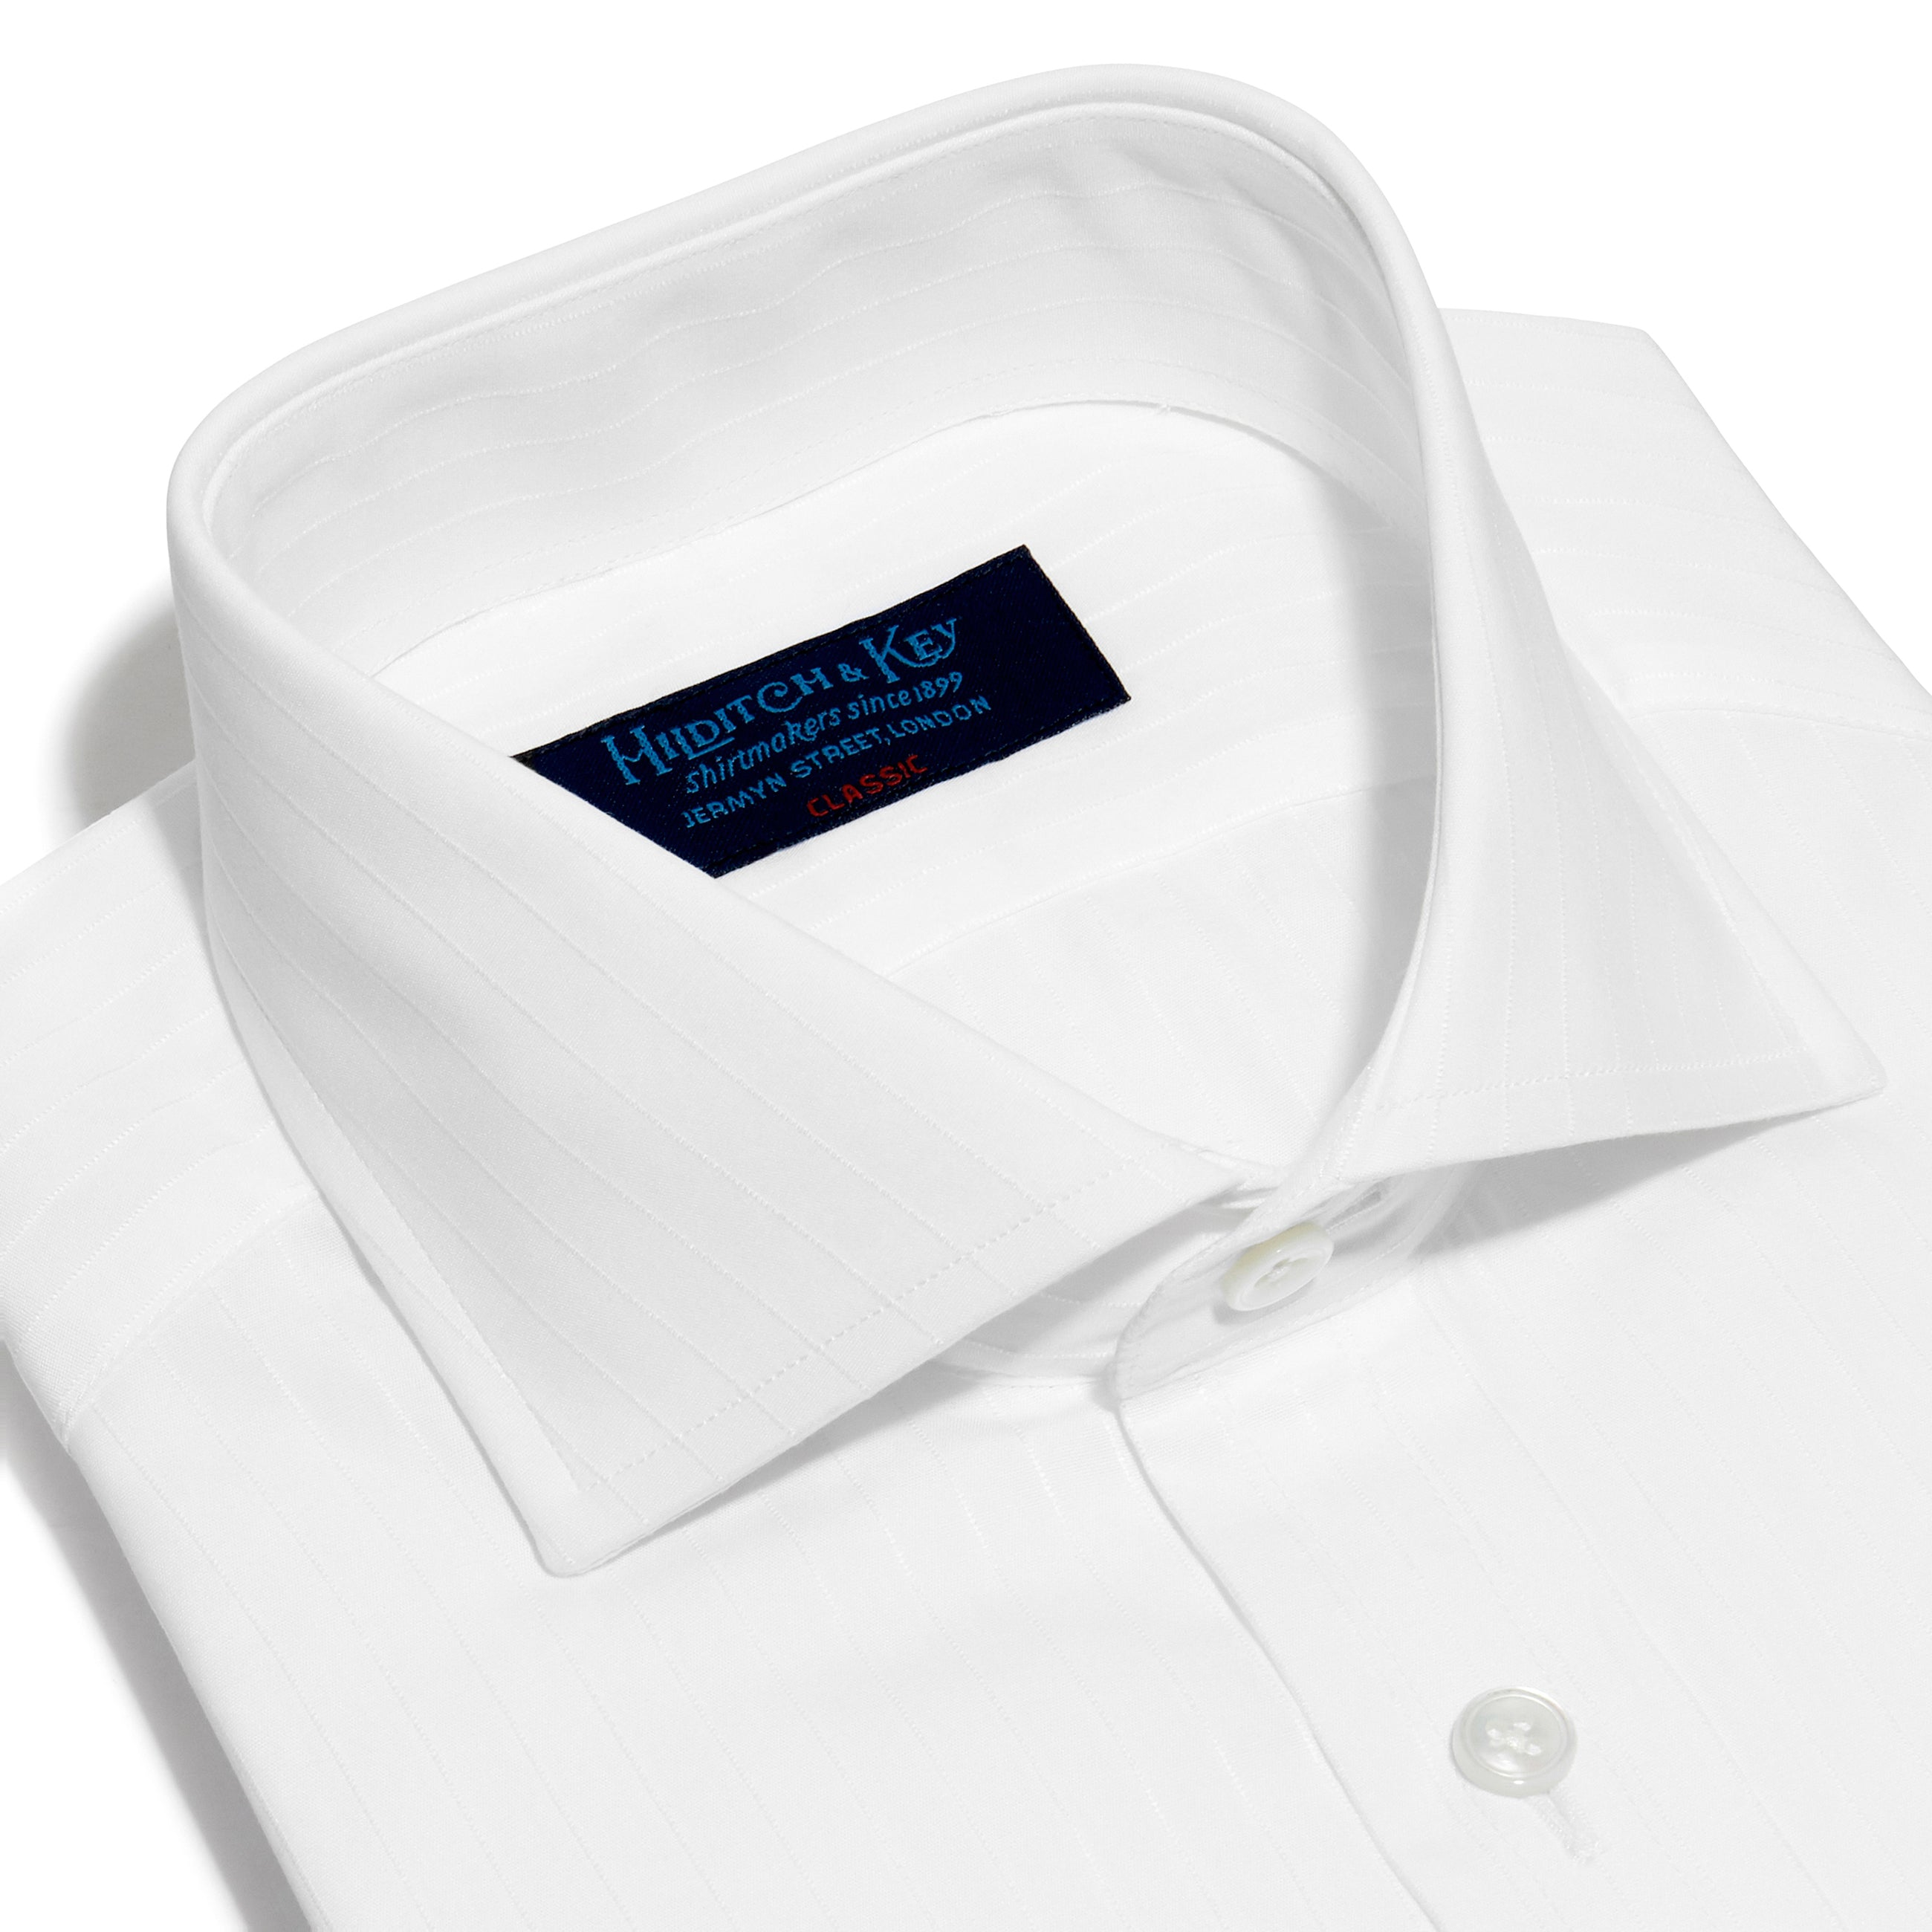 Cut-away Collar